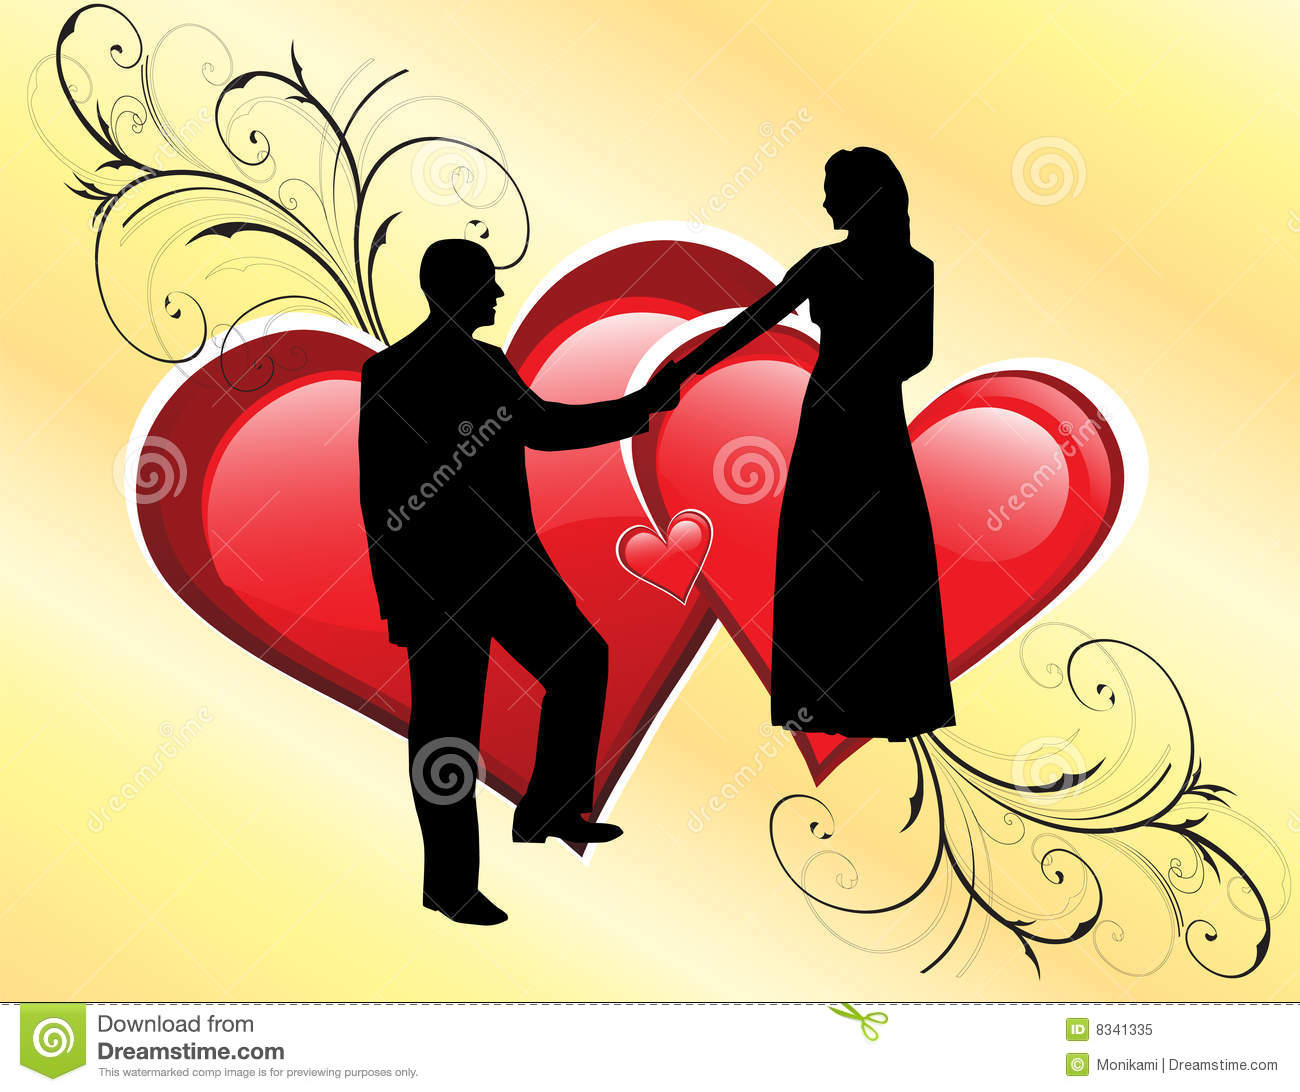 Wedding couple silhouette royalty free stock photo image 8341335